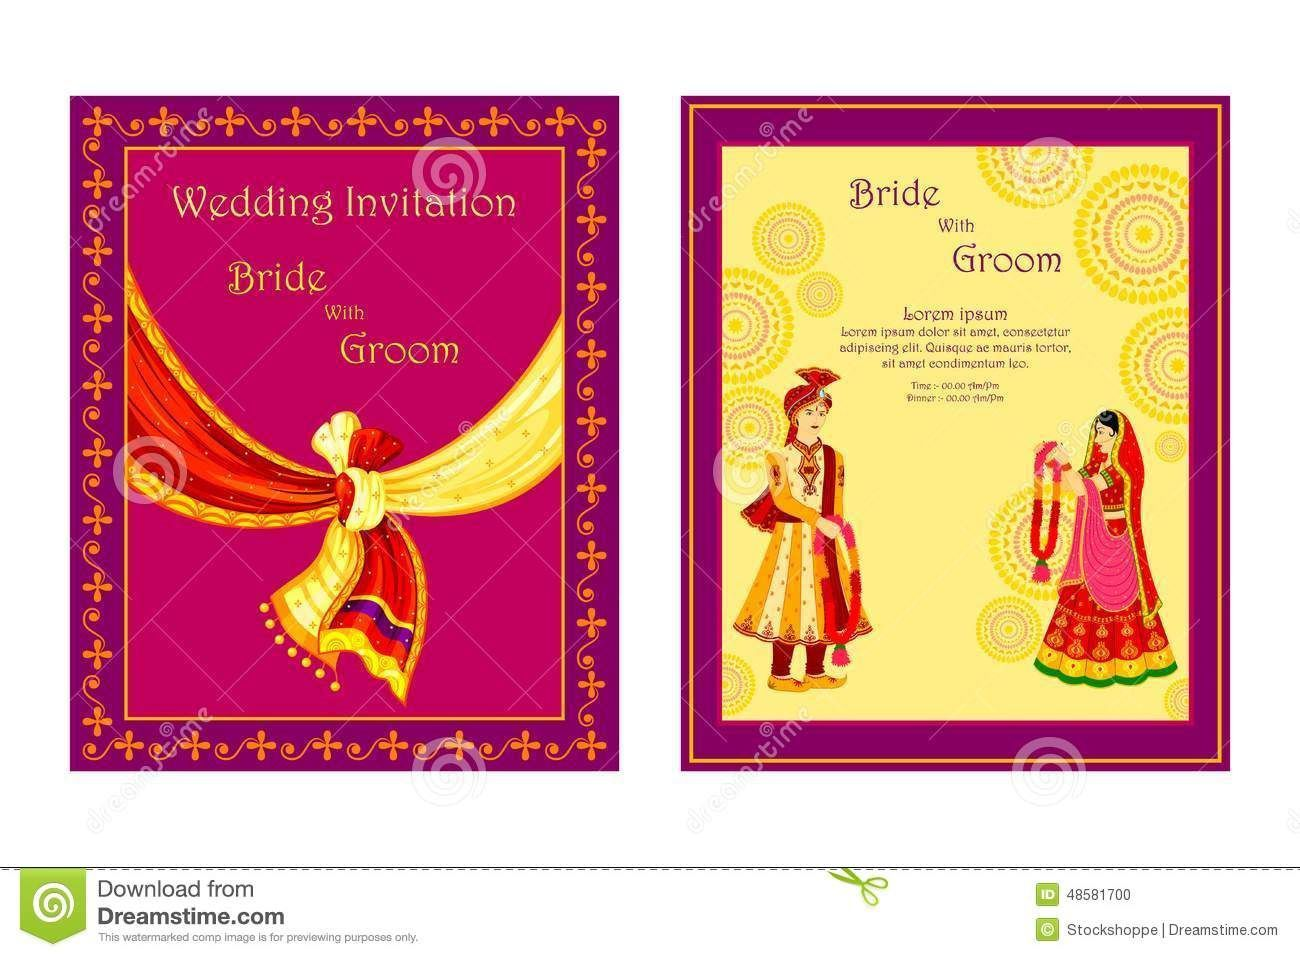 006 Magnificent Free Download Wedding Invitation Maker Software Idea  Hindu Video Card For PcFull